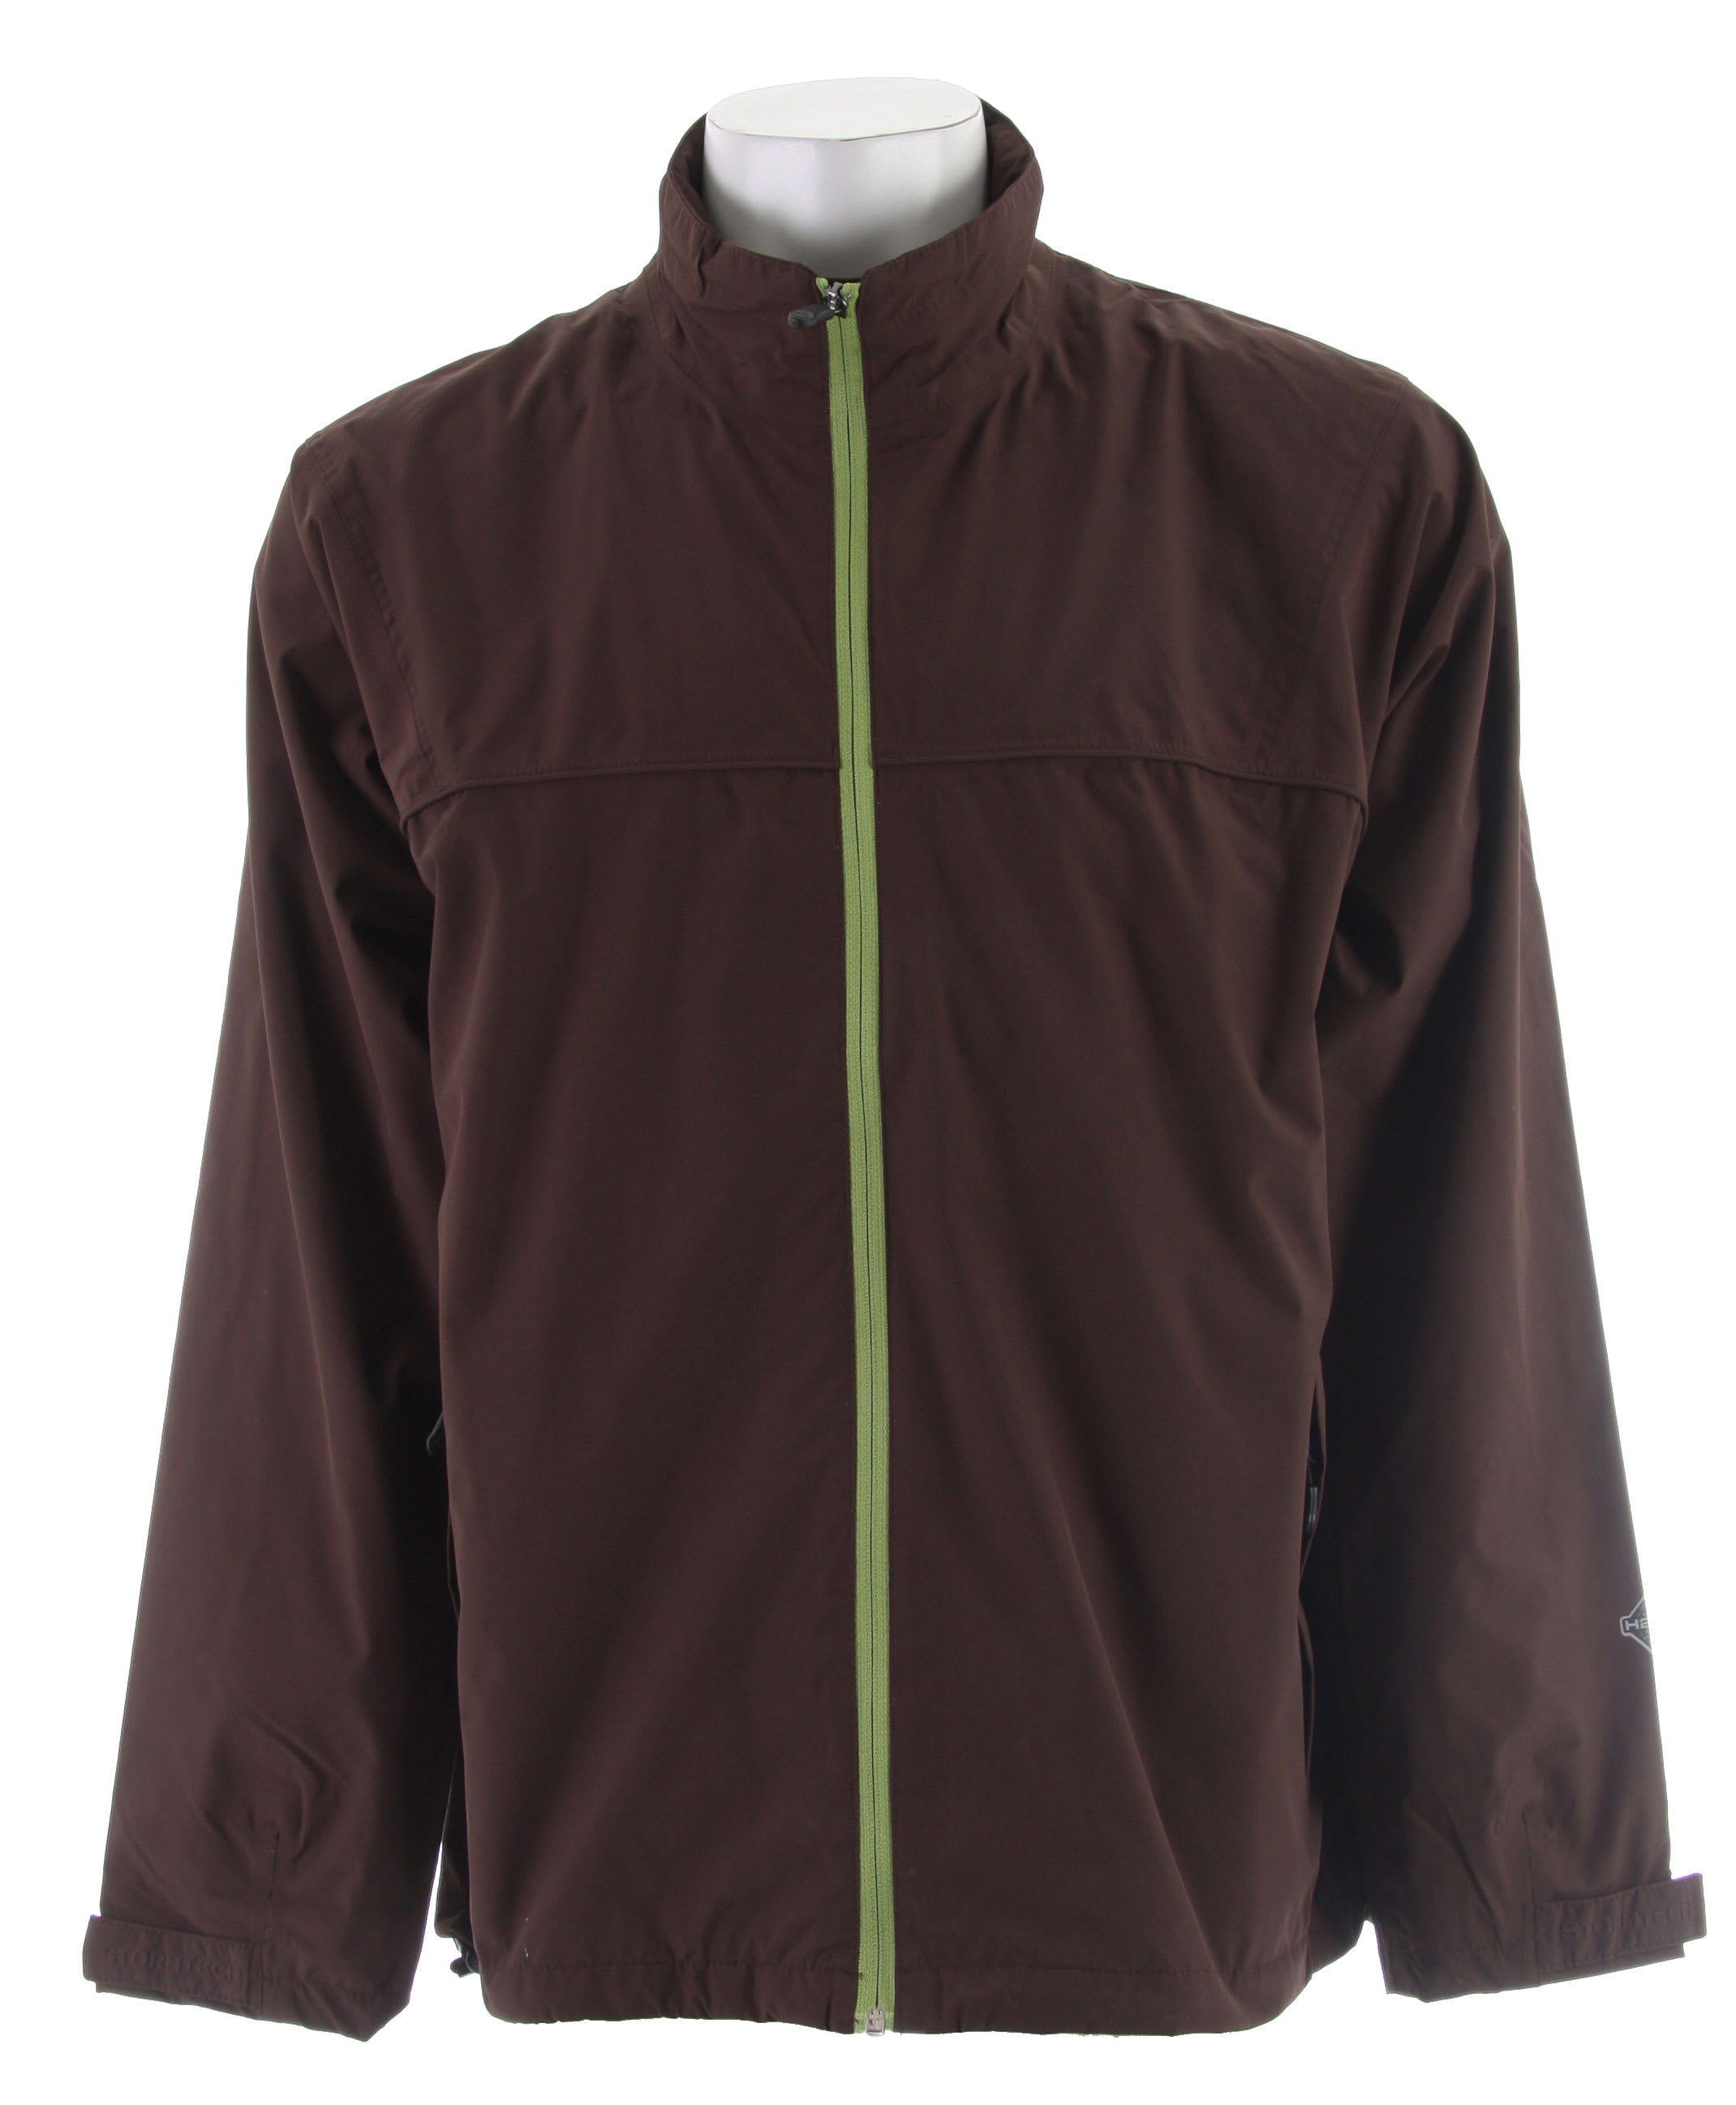 Shop for Stormtech Stratus Storm Rain Jacket Seal Brown/Peridot - Men's